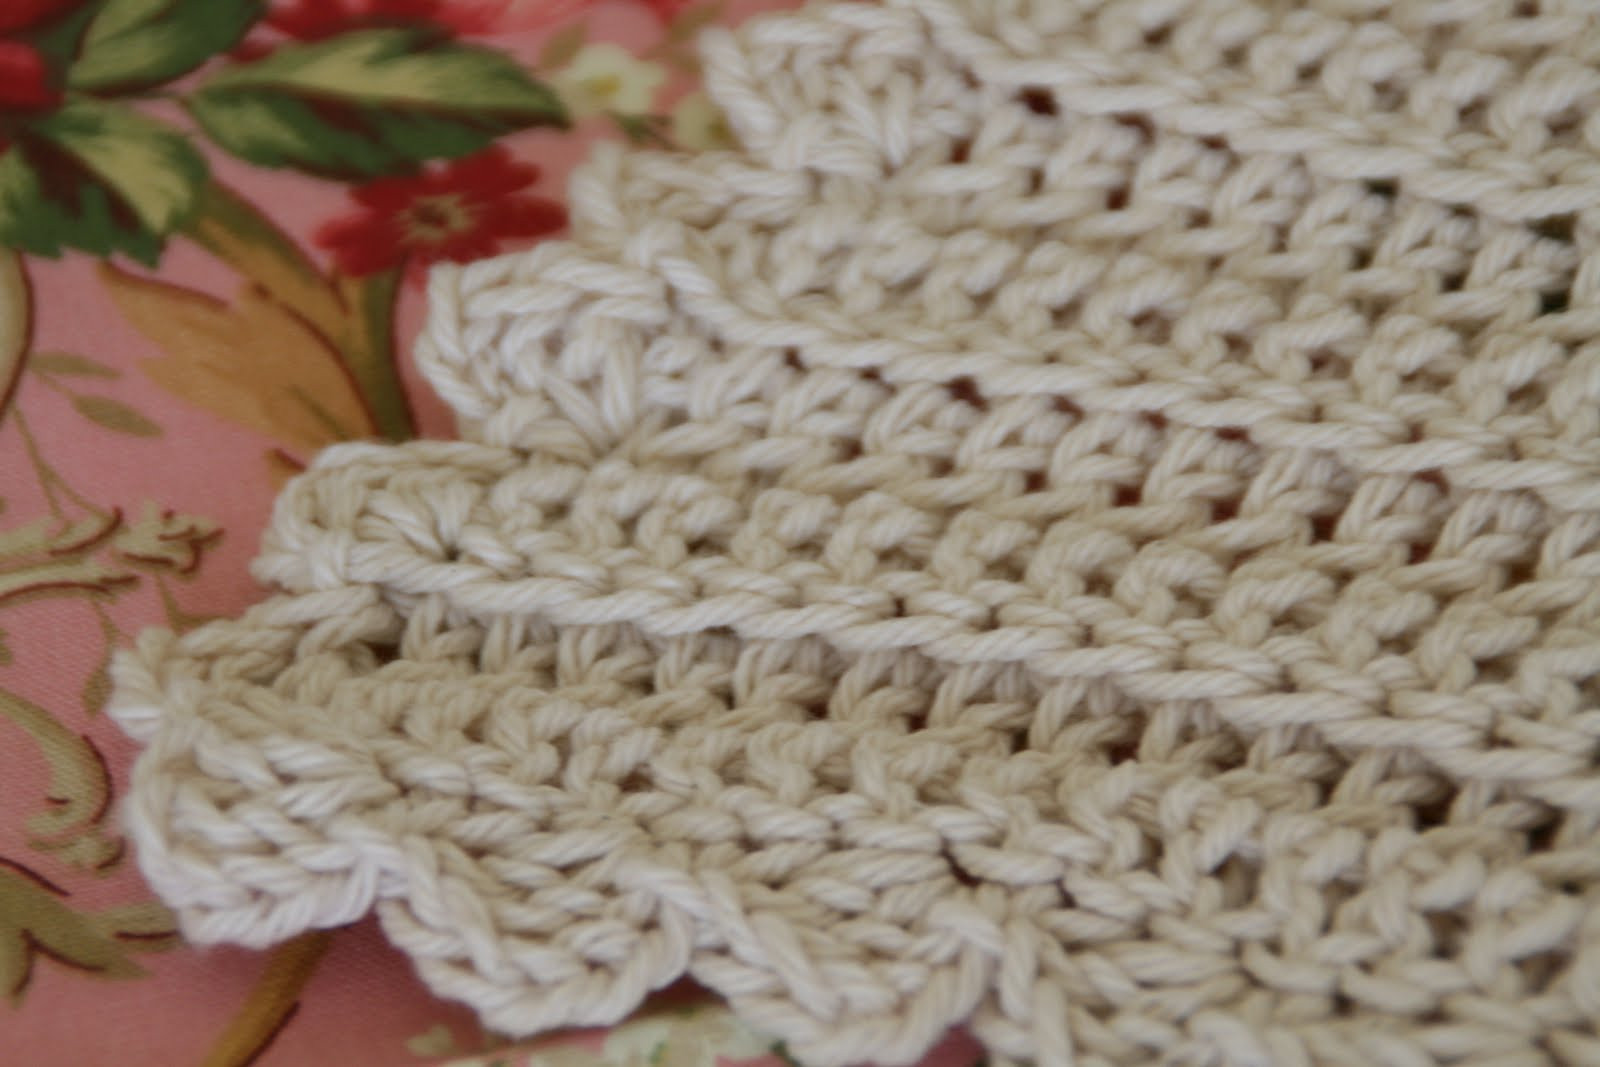 I Love This Cotton Yarn Crochet Patterns Luxury One Little Rayndrop Classic Baby Blanket Of Delightful 43 Ideas I Love This Cotton Yarn Crochet Patterns